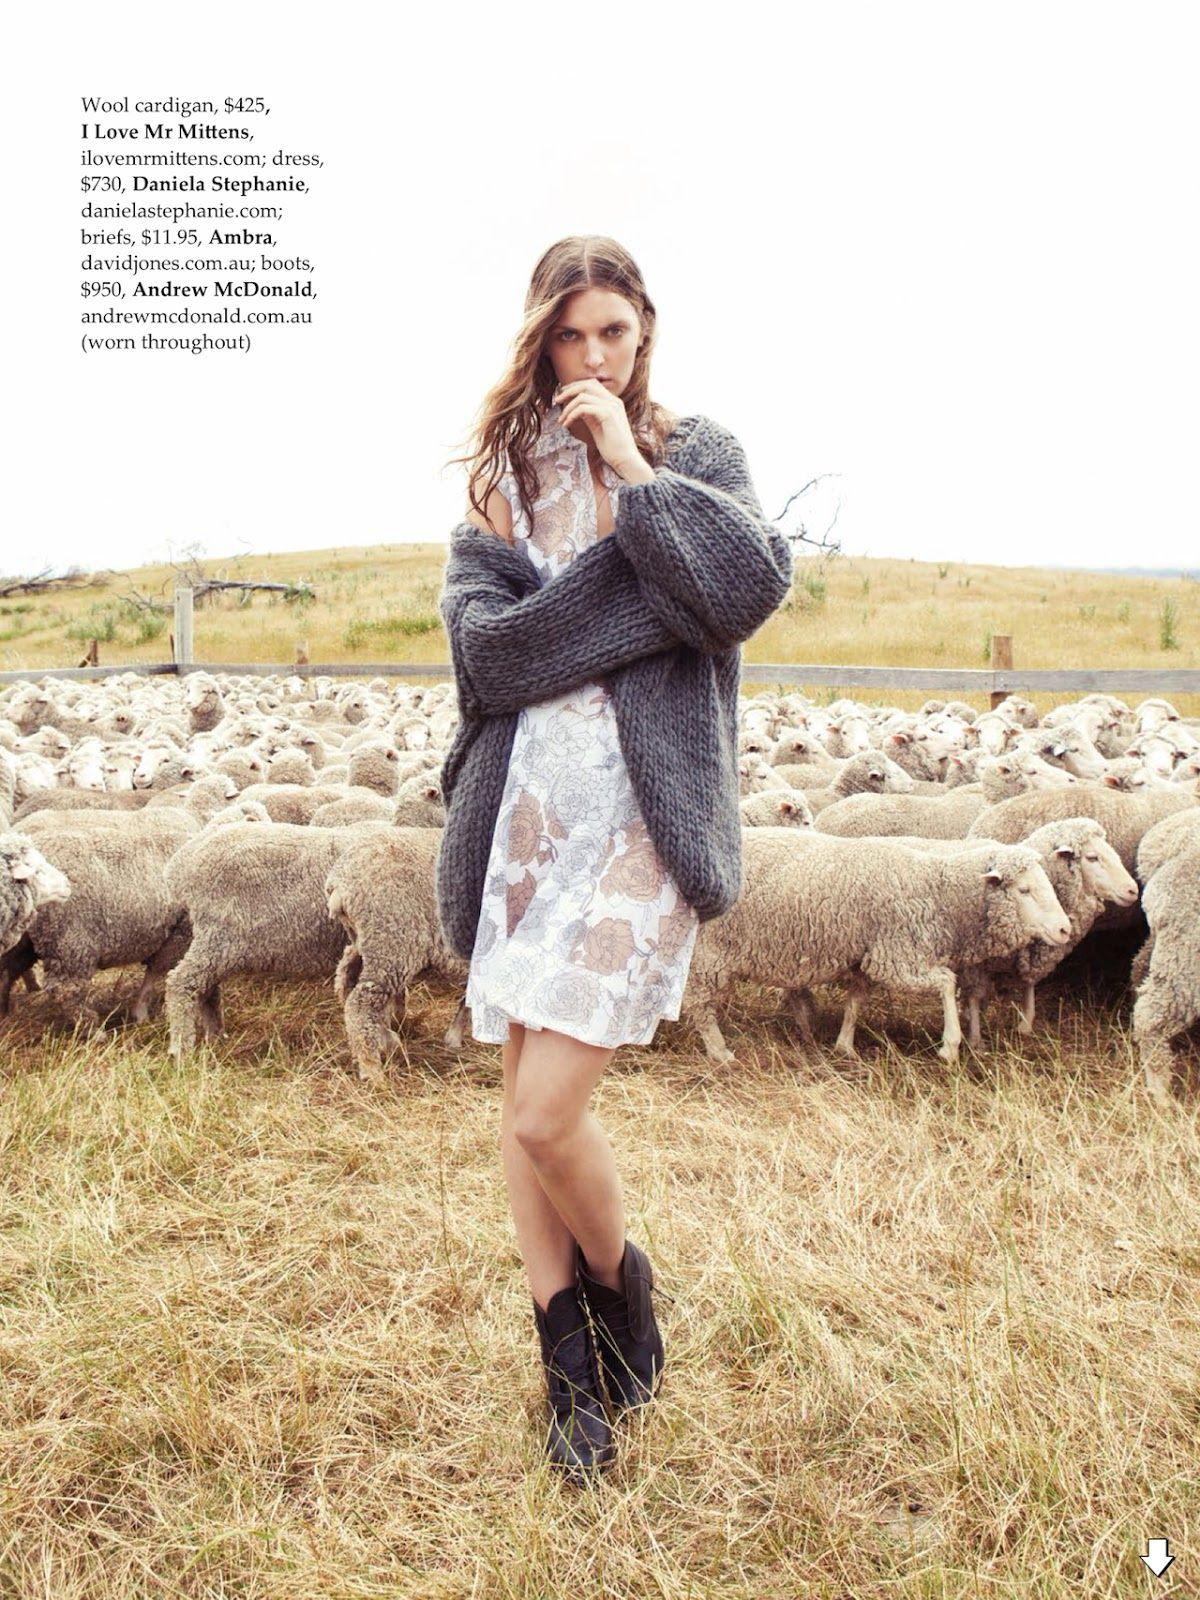 visual optimism; fashion editorials, shows, campaigns & more!: country strong: gertrud hegelund by stefania paparelli for elle australia apr...